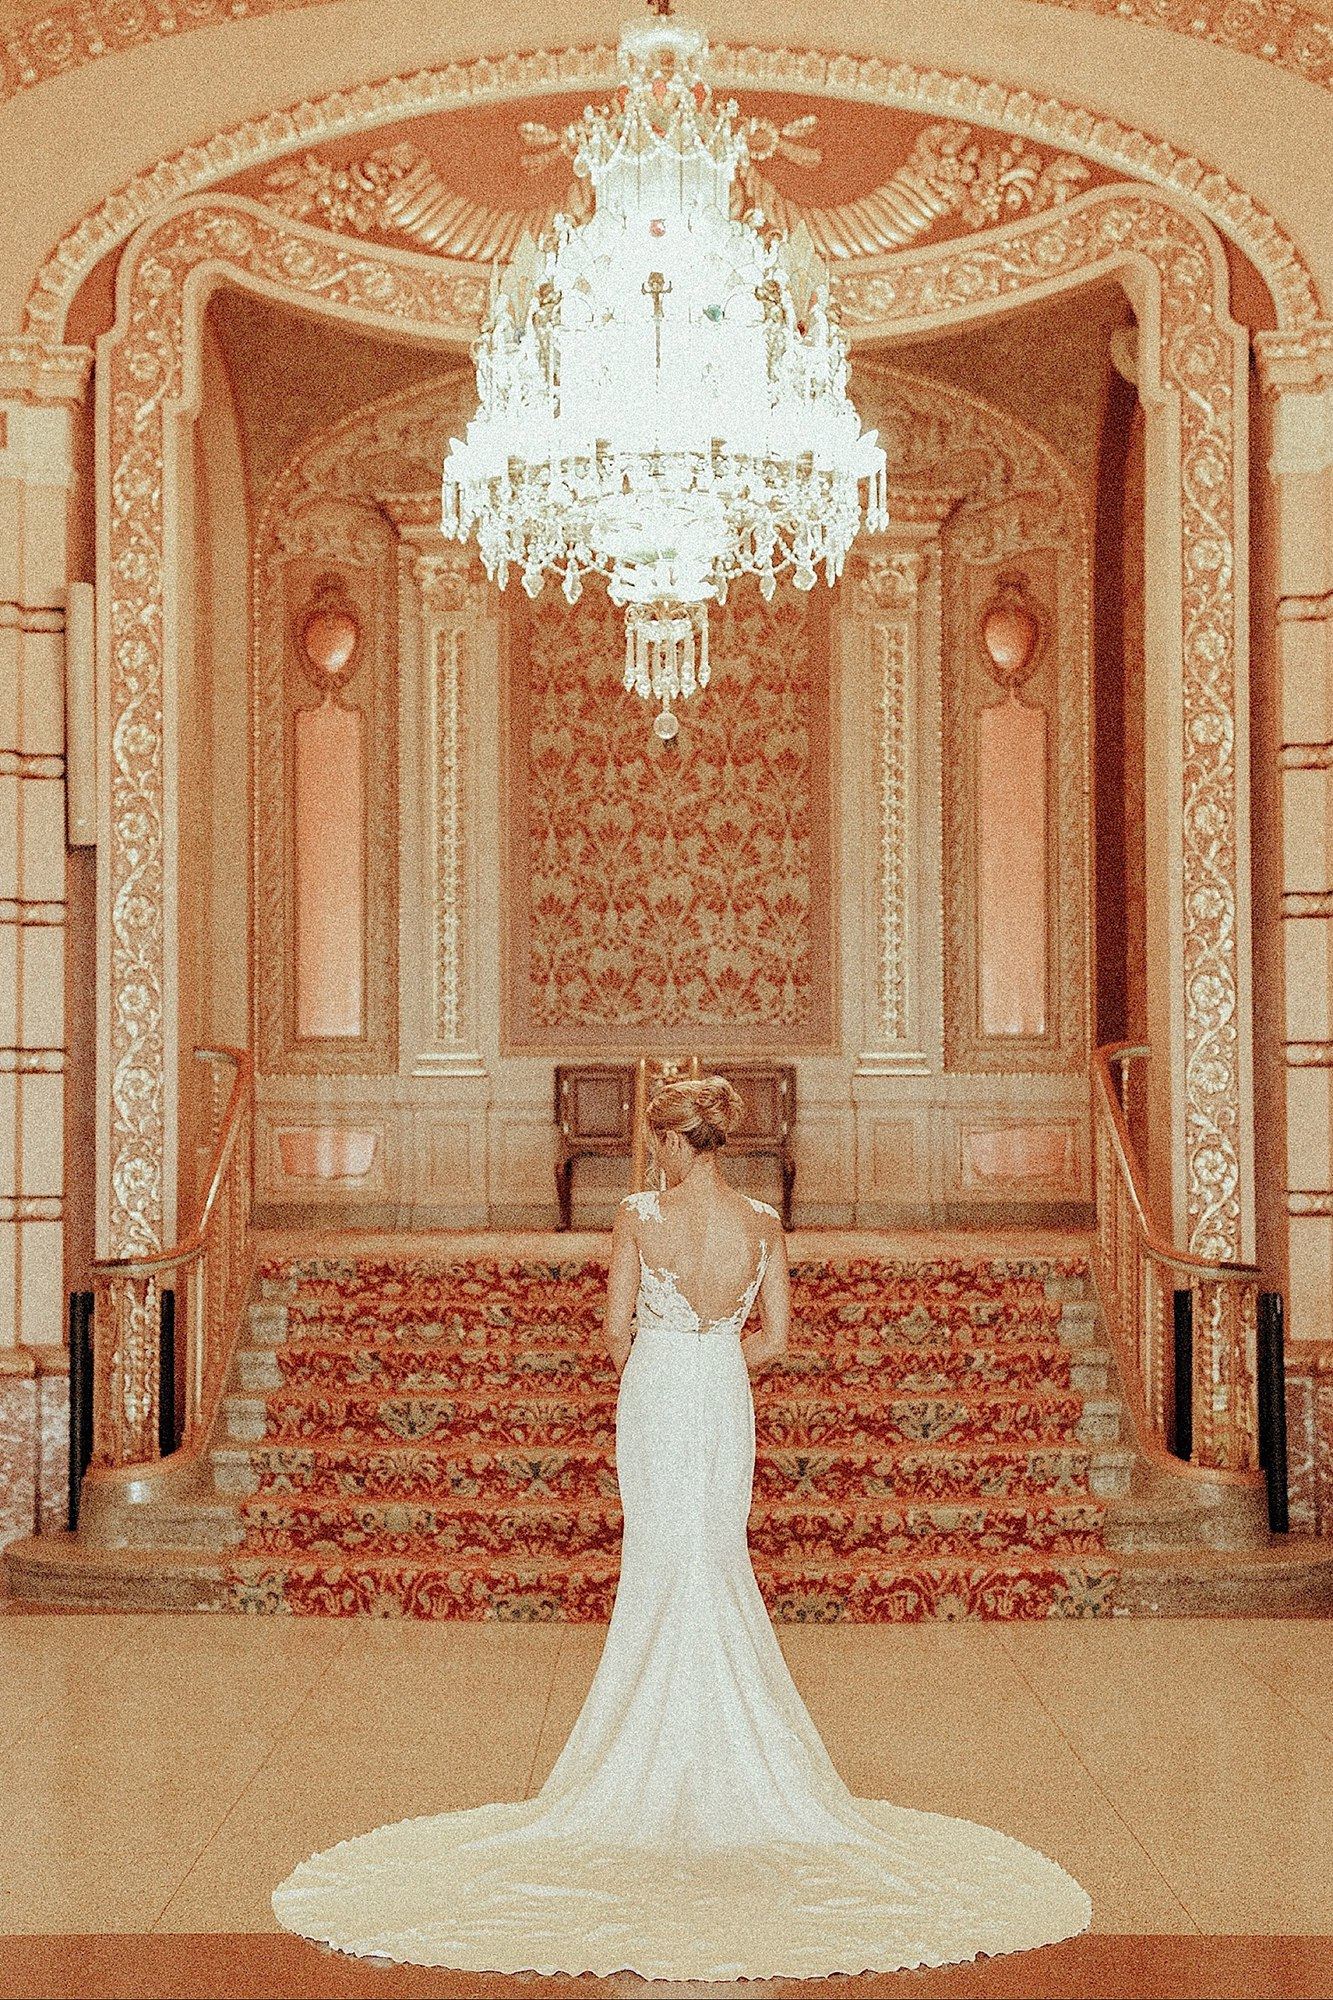 pronovias bride standing in pronovias gown in golden historic paramount theater